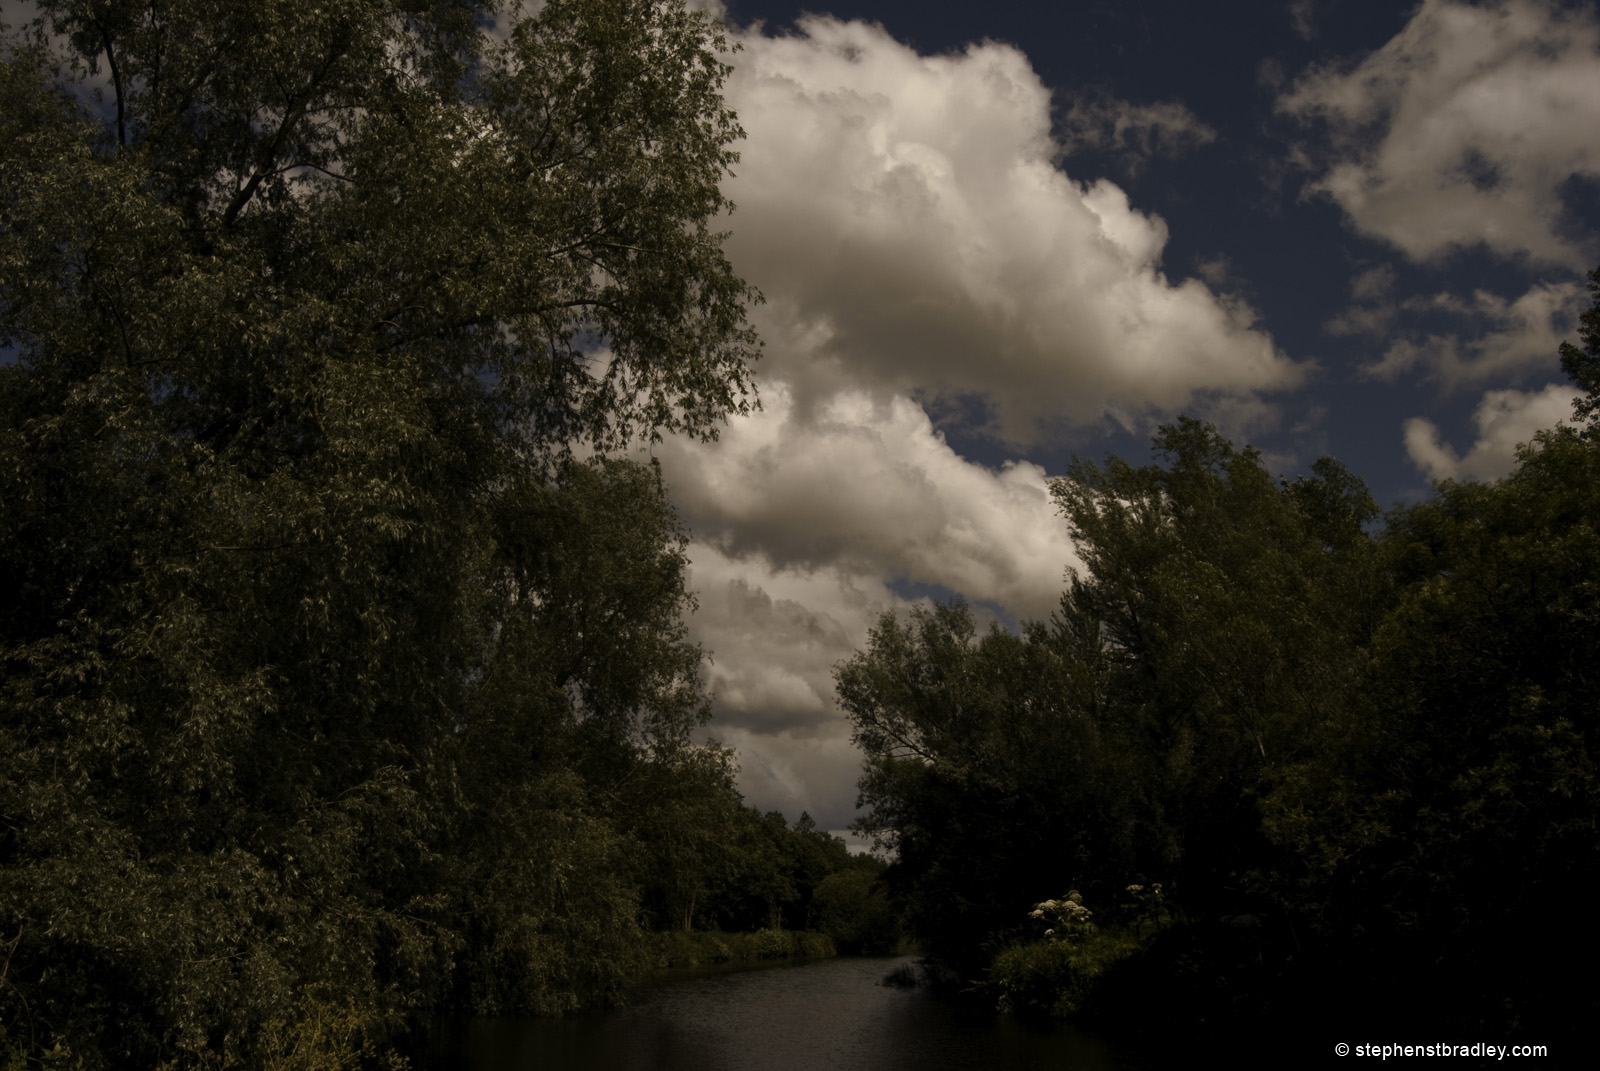 River Lagan Tow Path, Belfast, Northern Ireland. Fine art landscape photograph 2889.